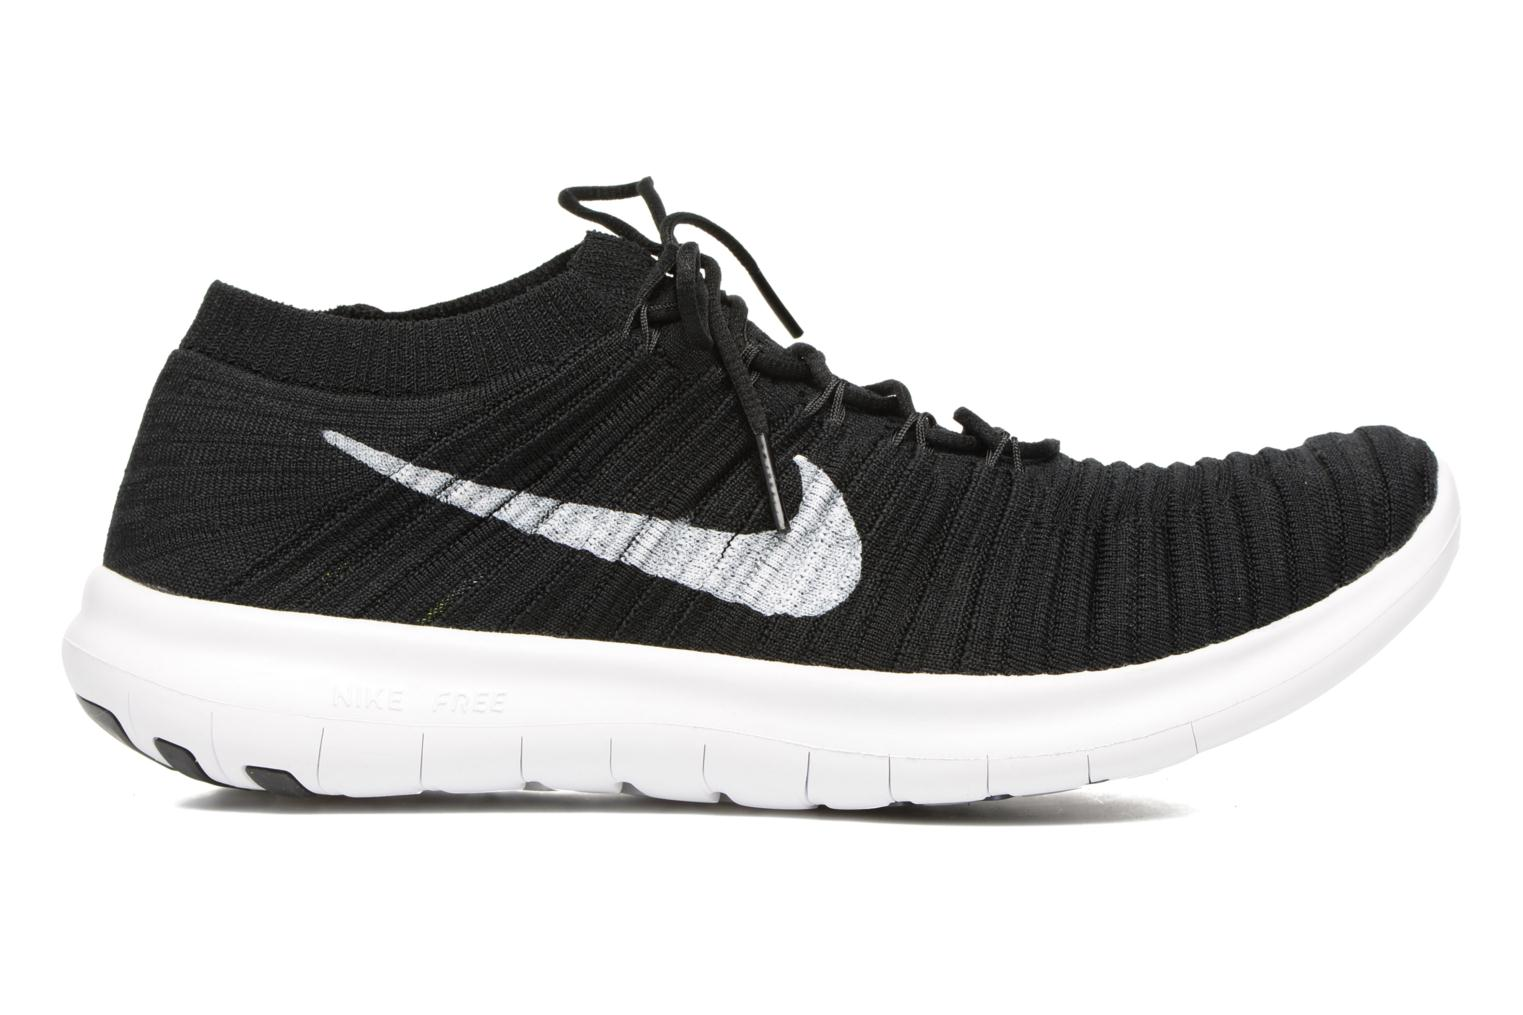 Nike Free Rn Motion Flyknit Black/White-Volt-Dark Grey